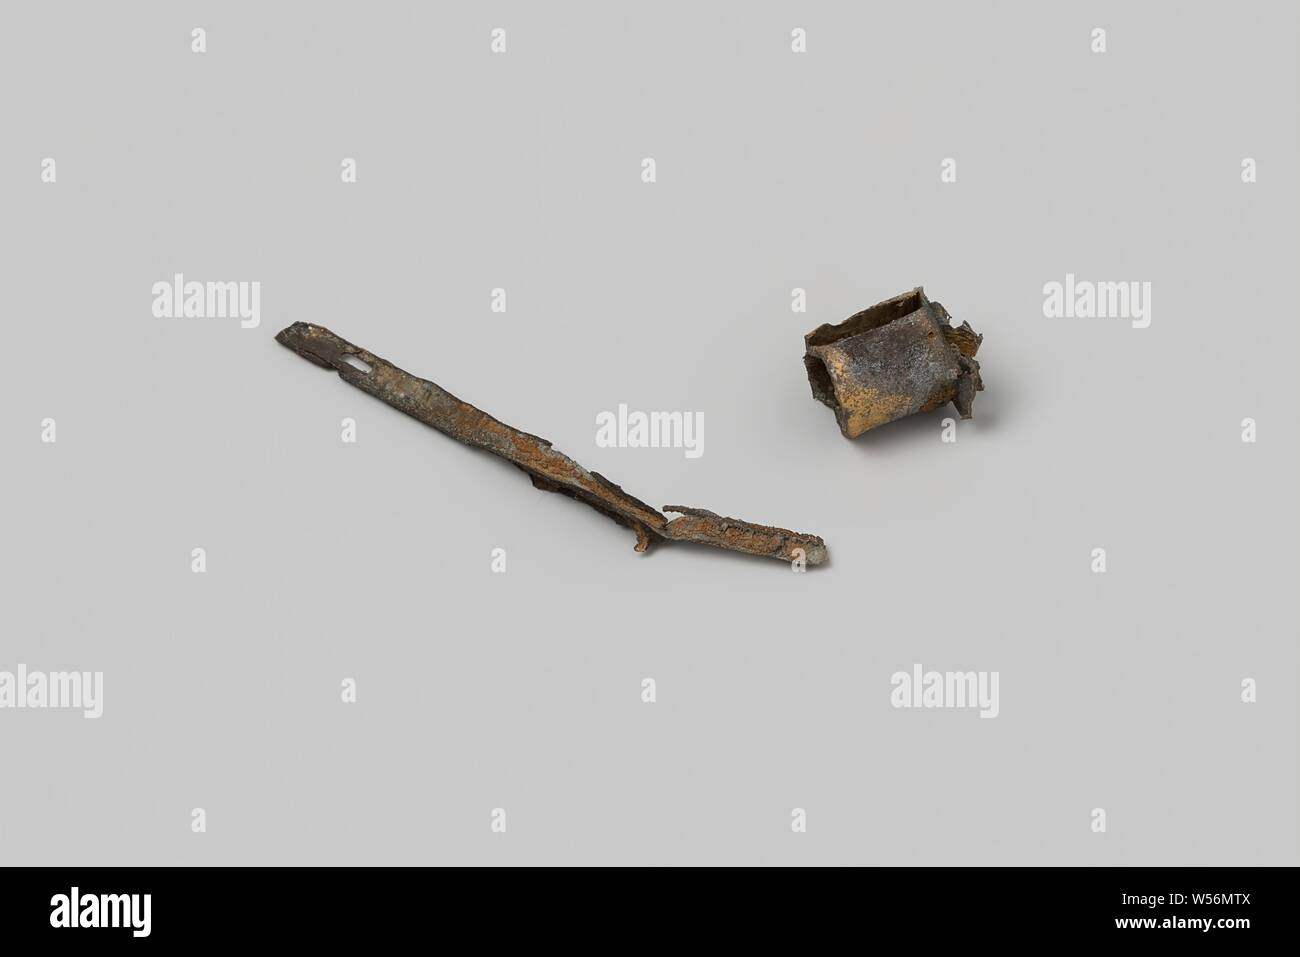 Metal fittings from the wreck of the East Indies ship 't Vliegend Hart, Two fragments, a copper strip and a ring. Metal strip, Dutch East India Company, 't Vliegend Hart (ship), Middelburg, 1729 - 2-Mar-1735, copper (metal), h 1 cm d 0.9 cm h 0.3 cm w 3.6 cm × d 0.2 cm Stock Photo